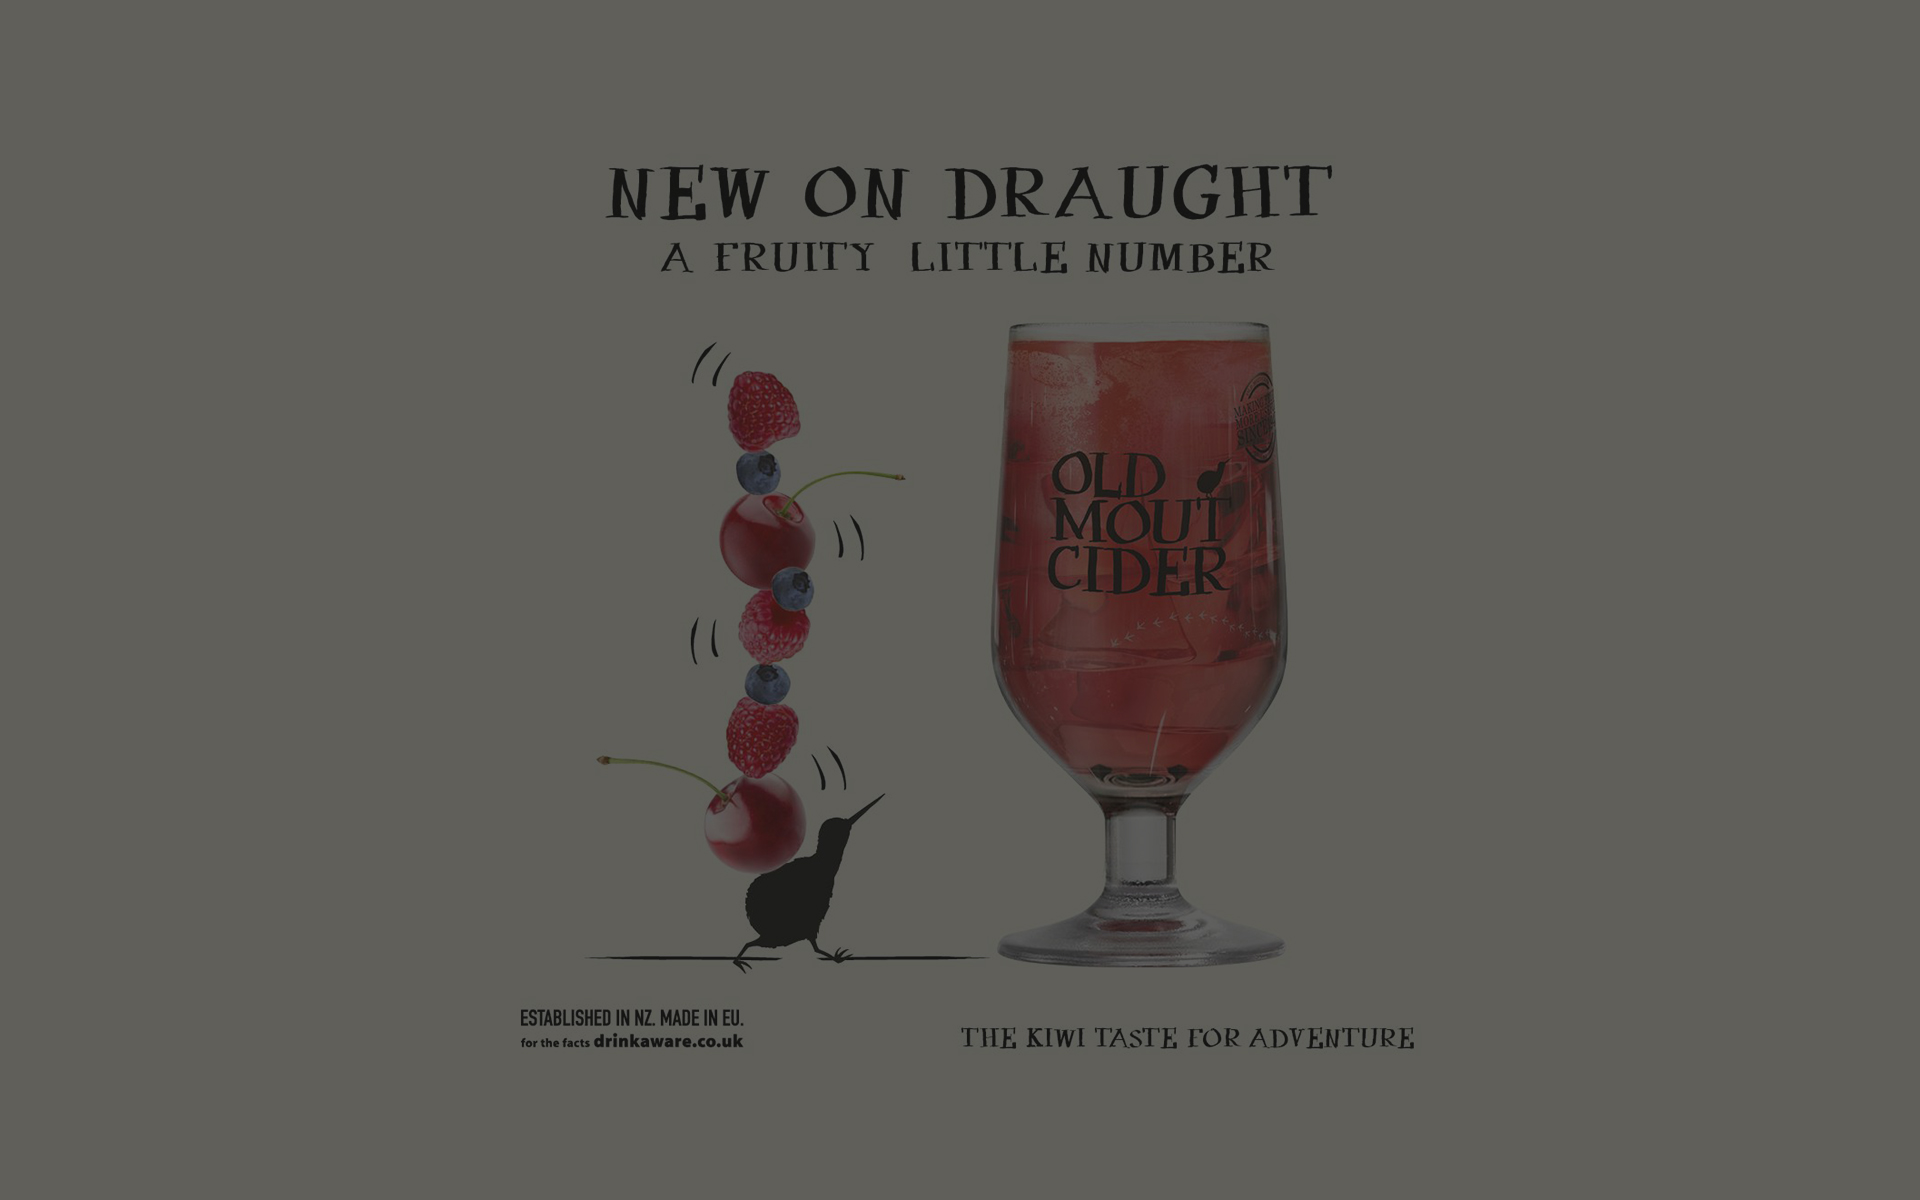 Draught vs Bottles: What's the Future?